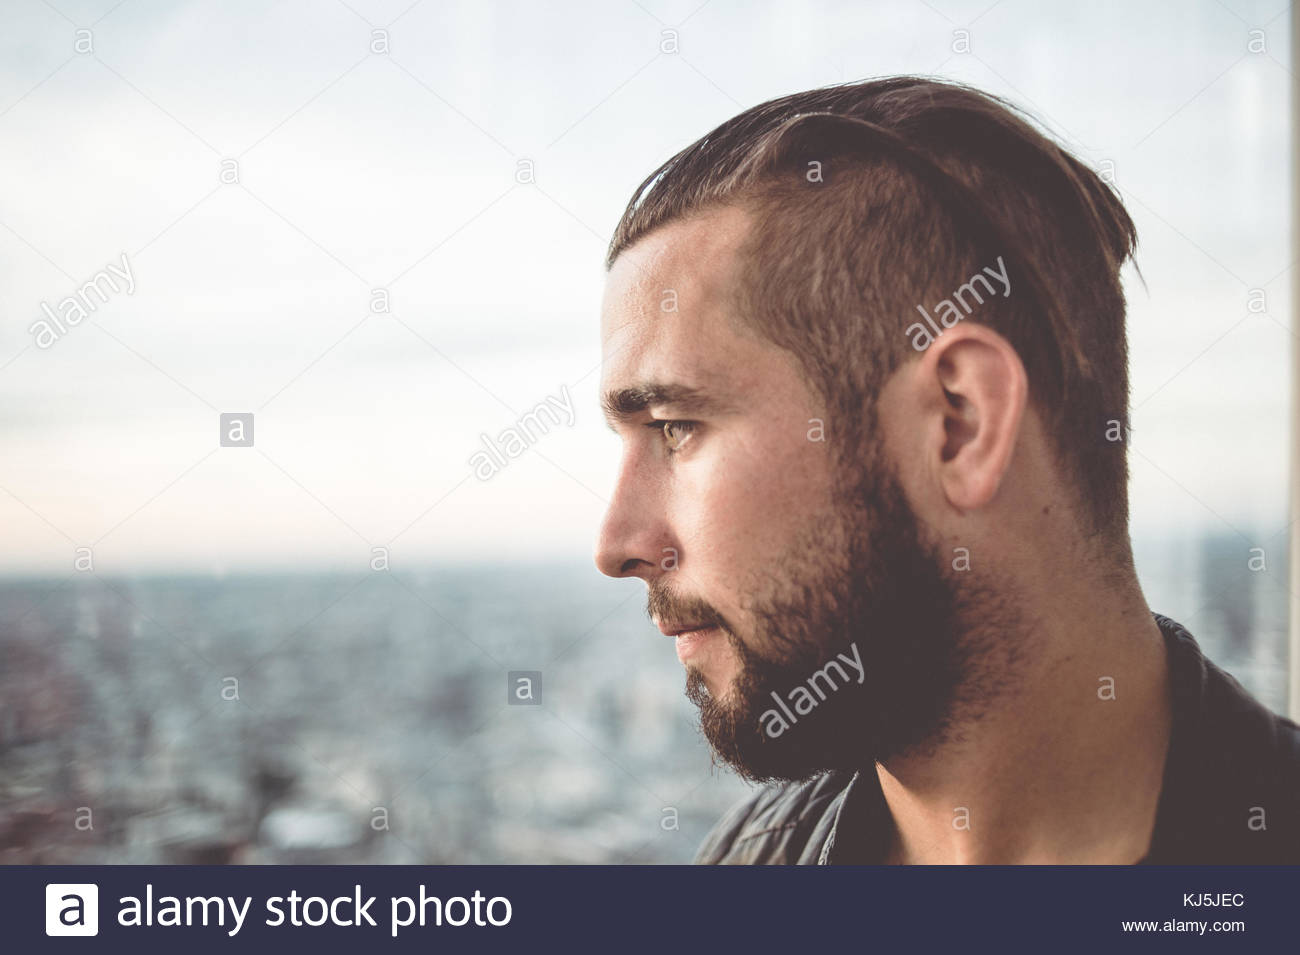 Man looking out the window - Stock Image